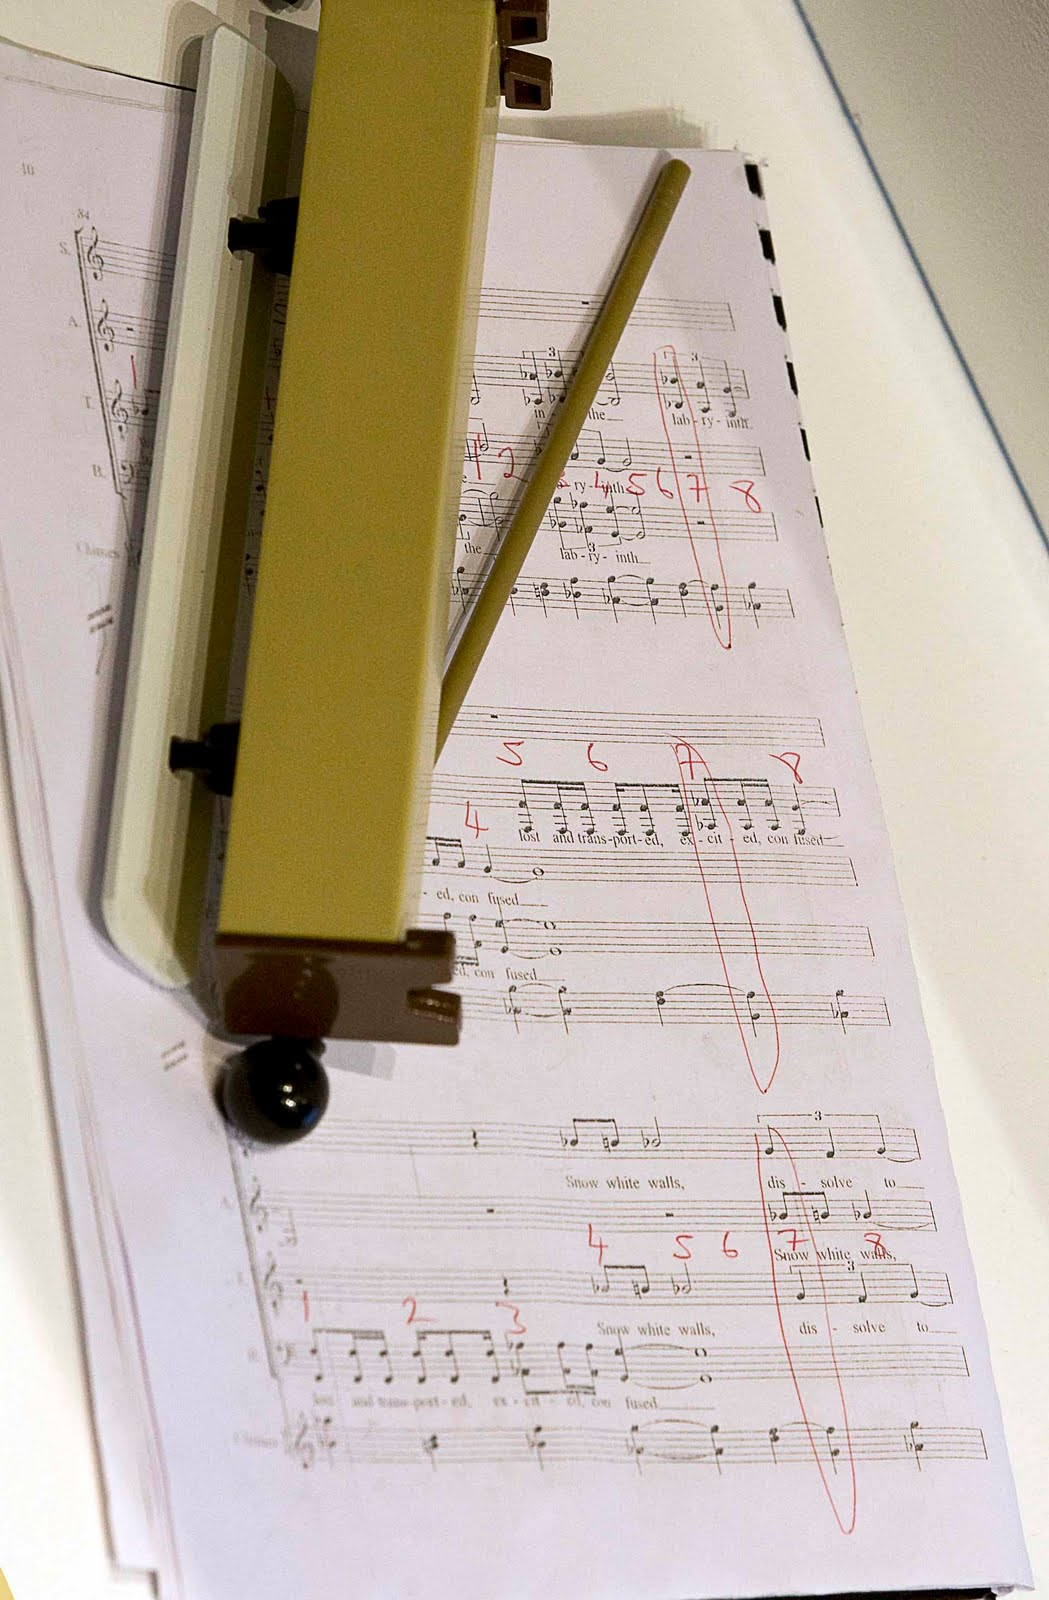 Music_Sheet_&_Instrument_0579Ae